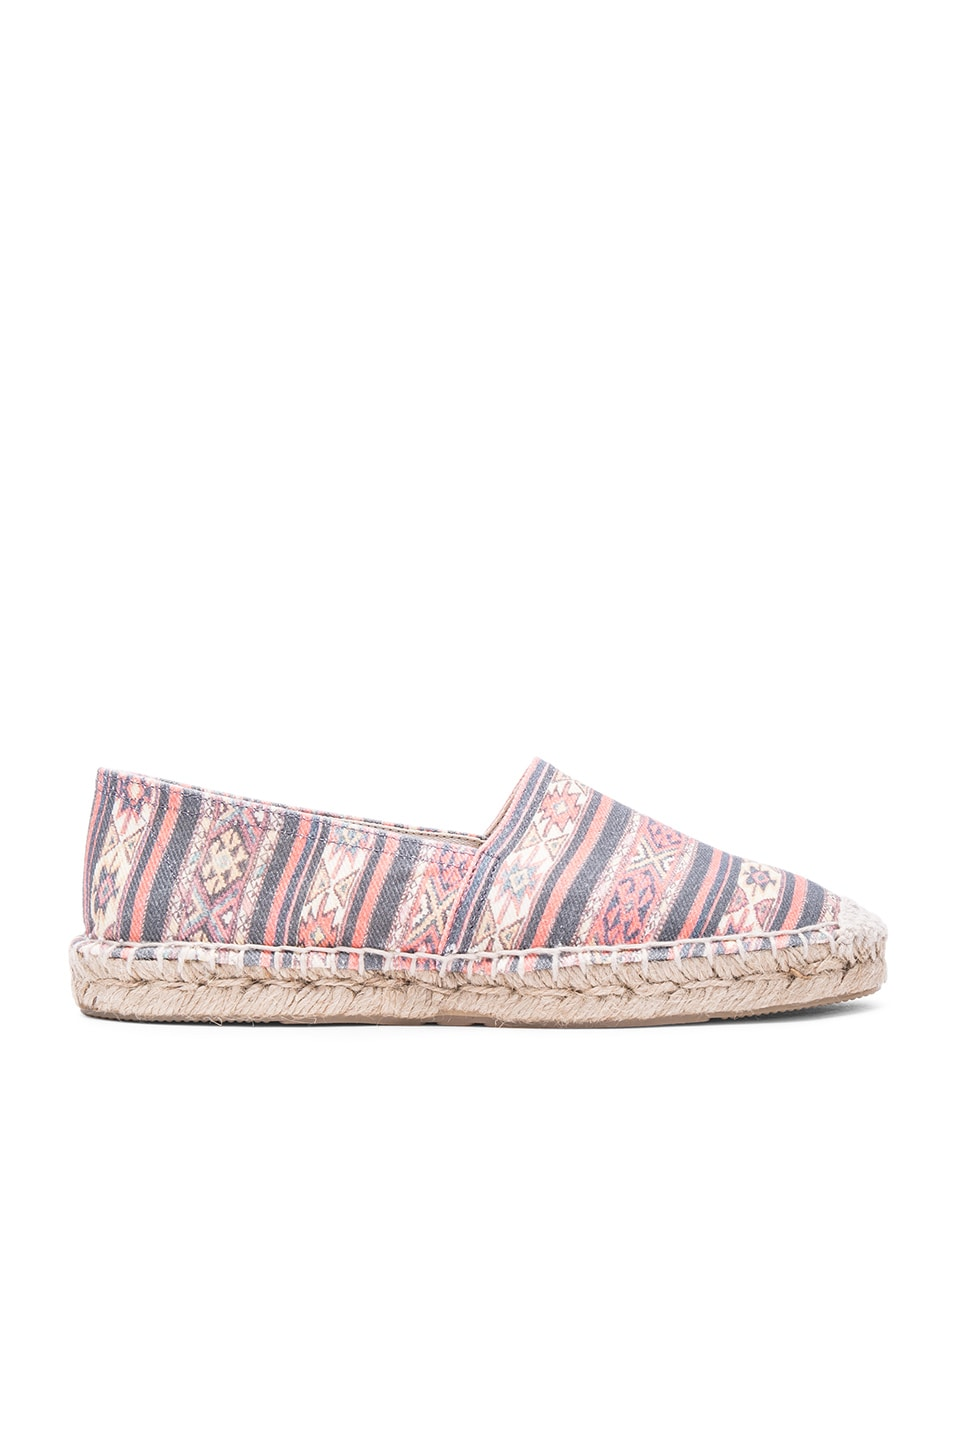 Image 1 of Isabel Marant Etoile Cana Canvas Espadrilles in Black Rust